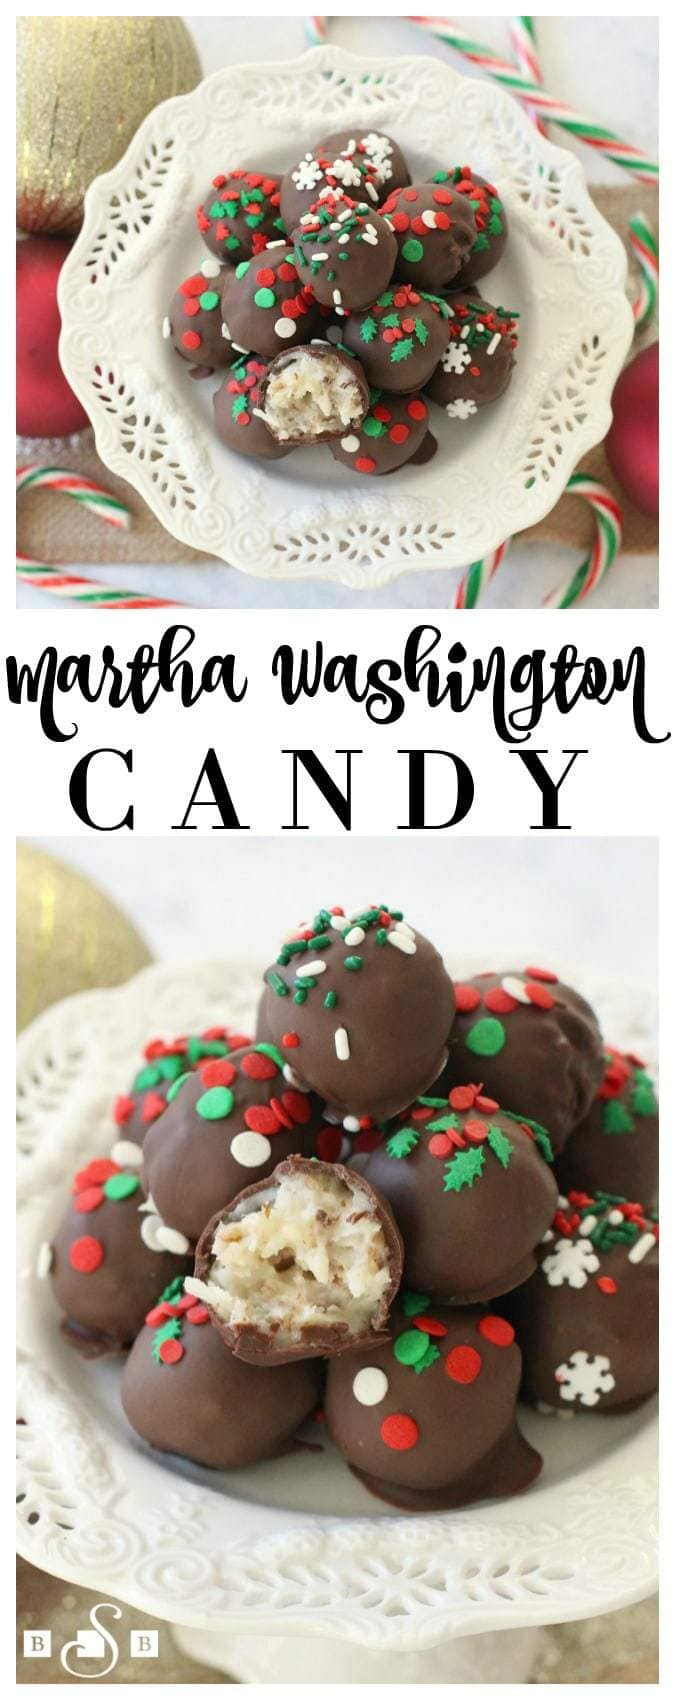 Martha Washington Candy - Butter With A Side of Bread